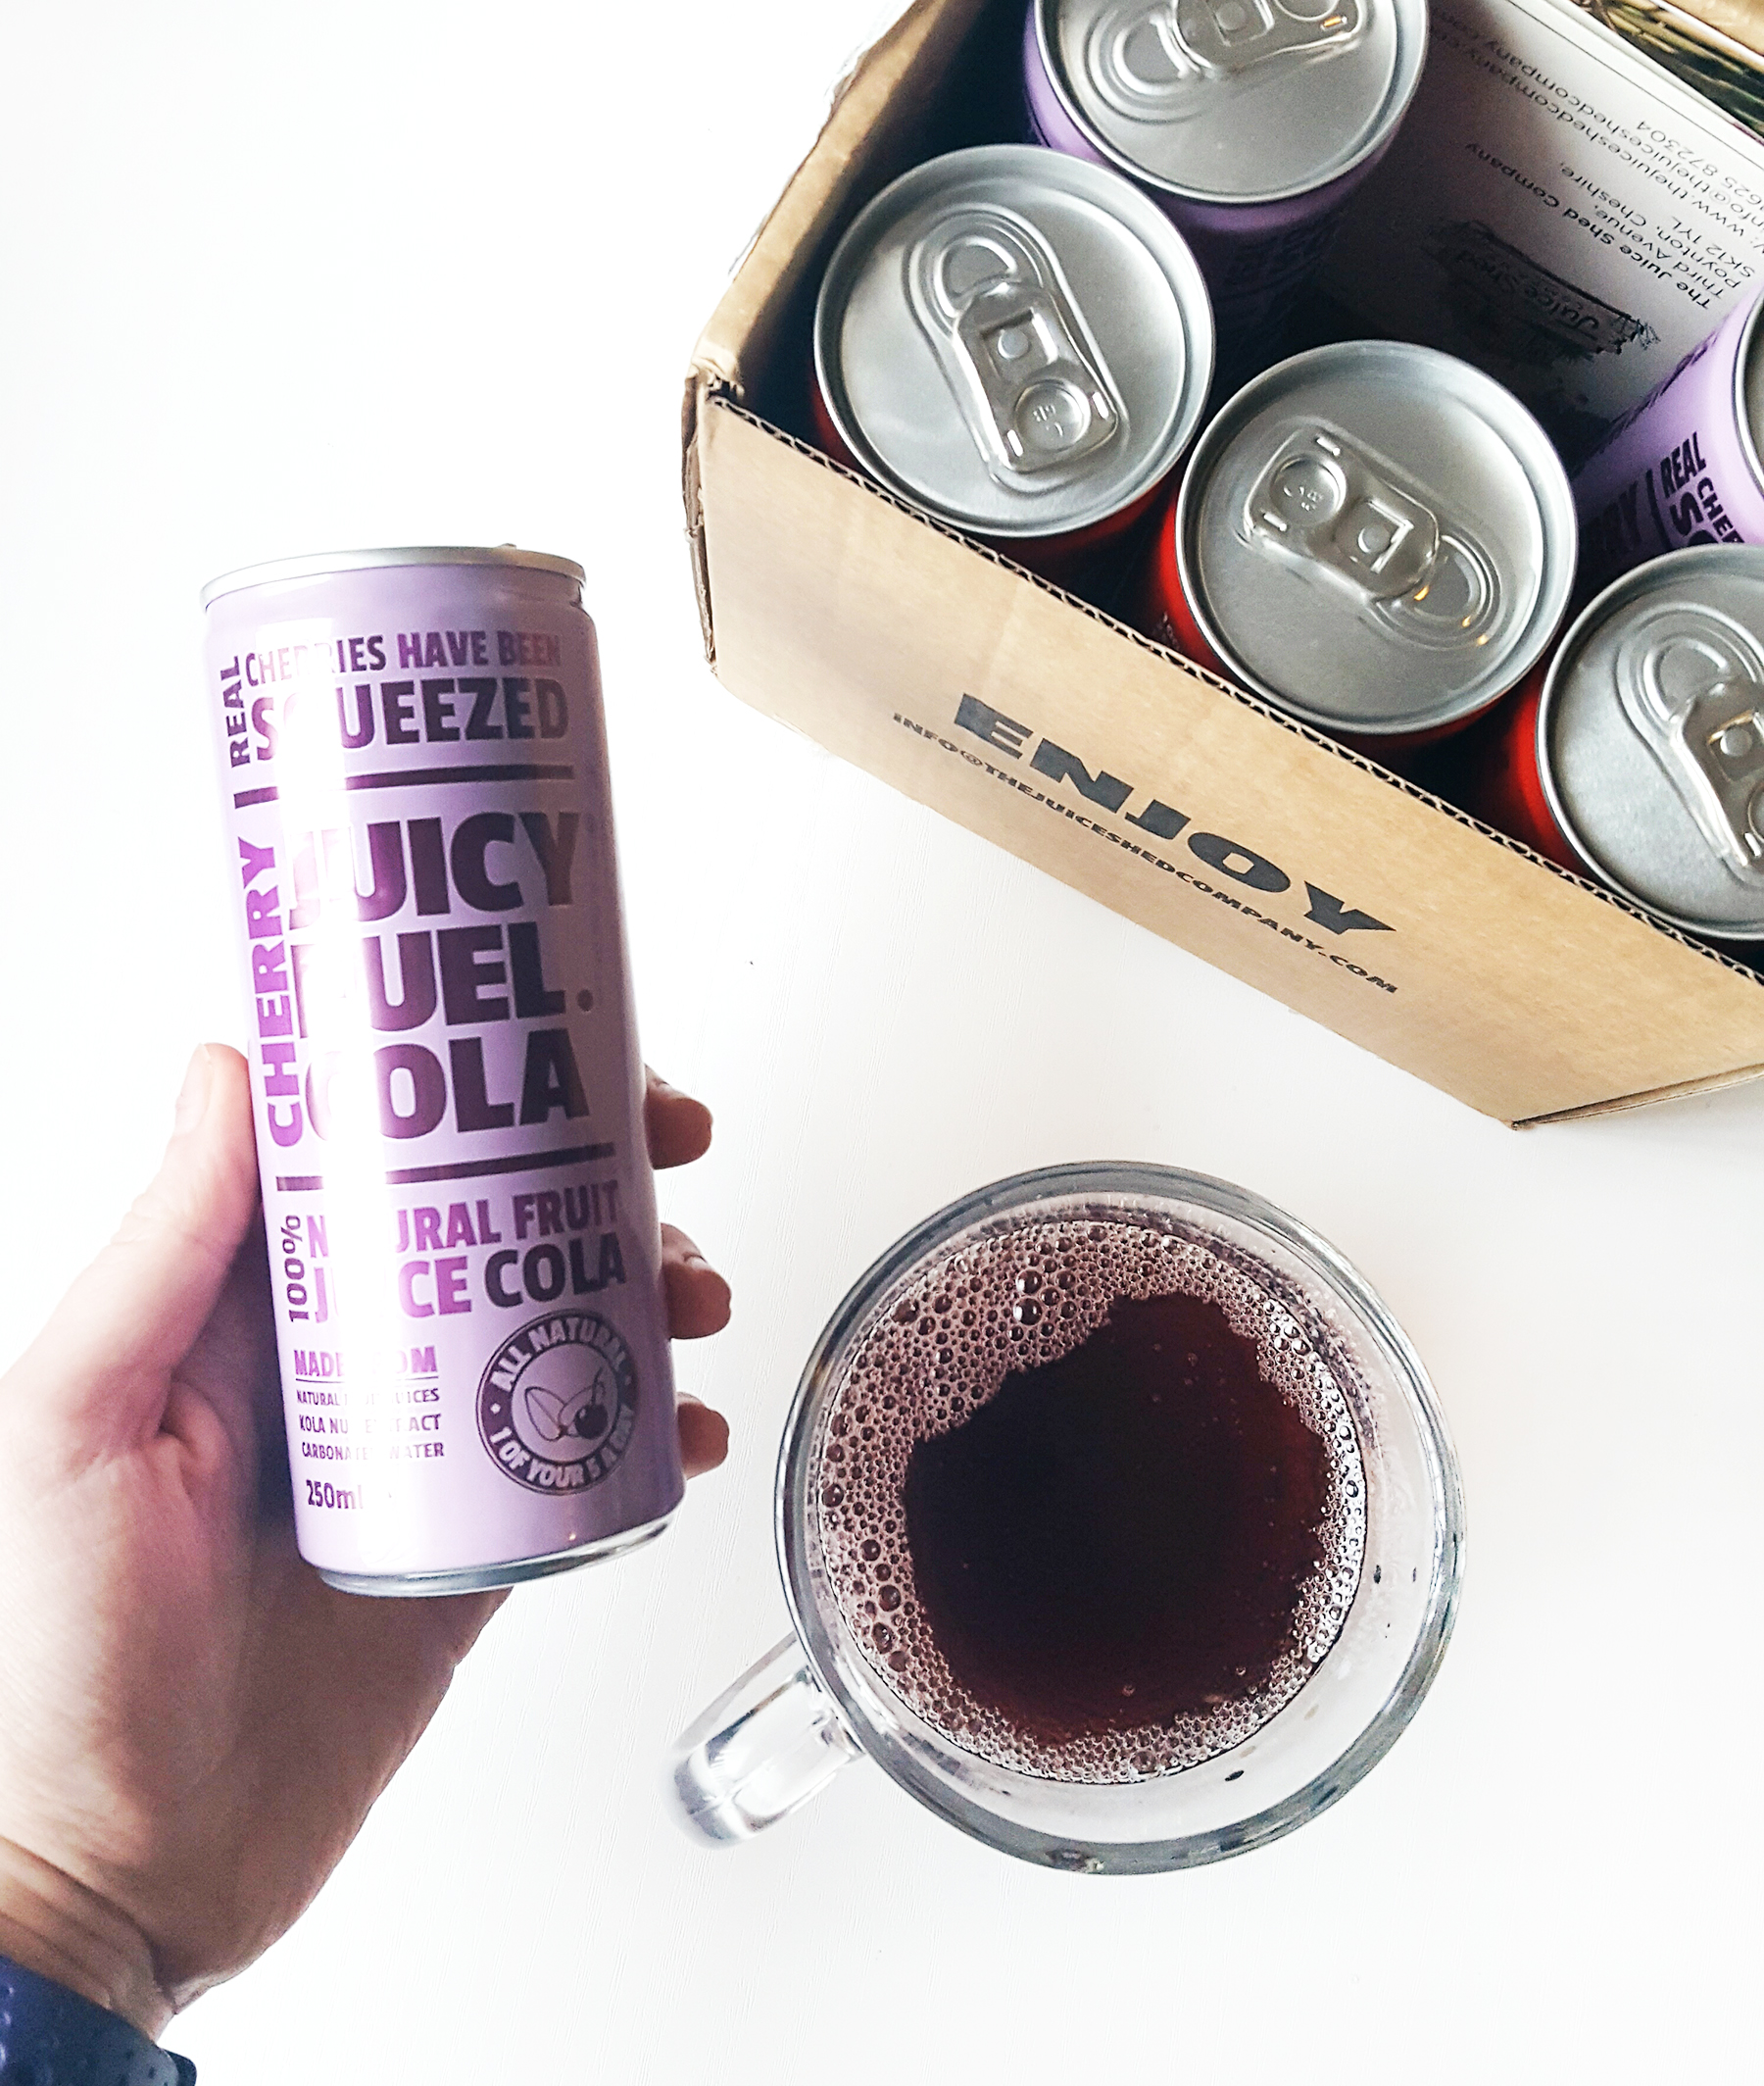 Currently Tasting #3 | Juicy Fuel Cola